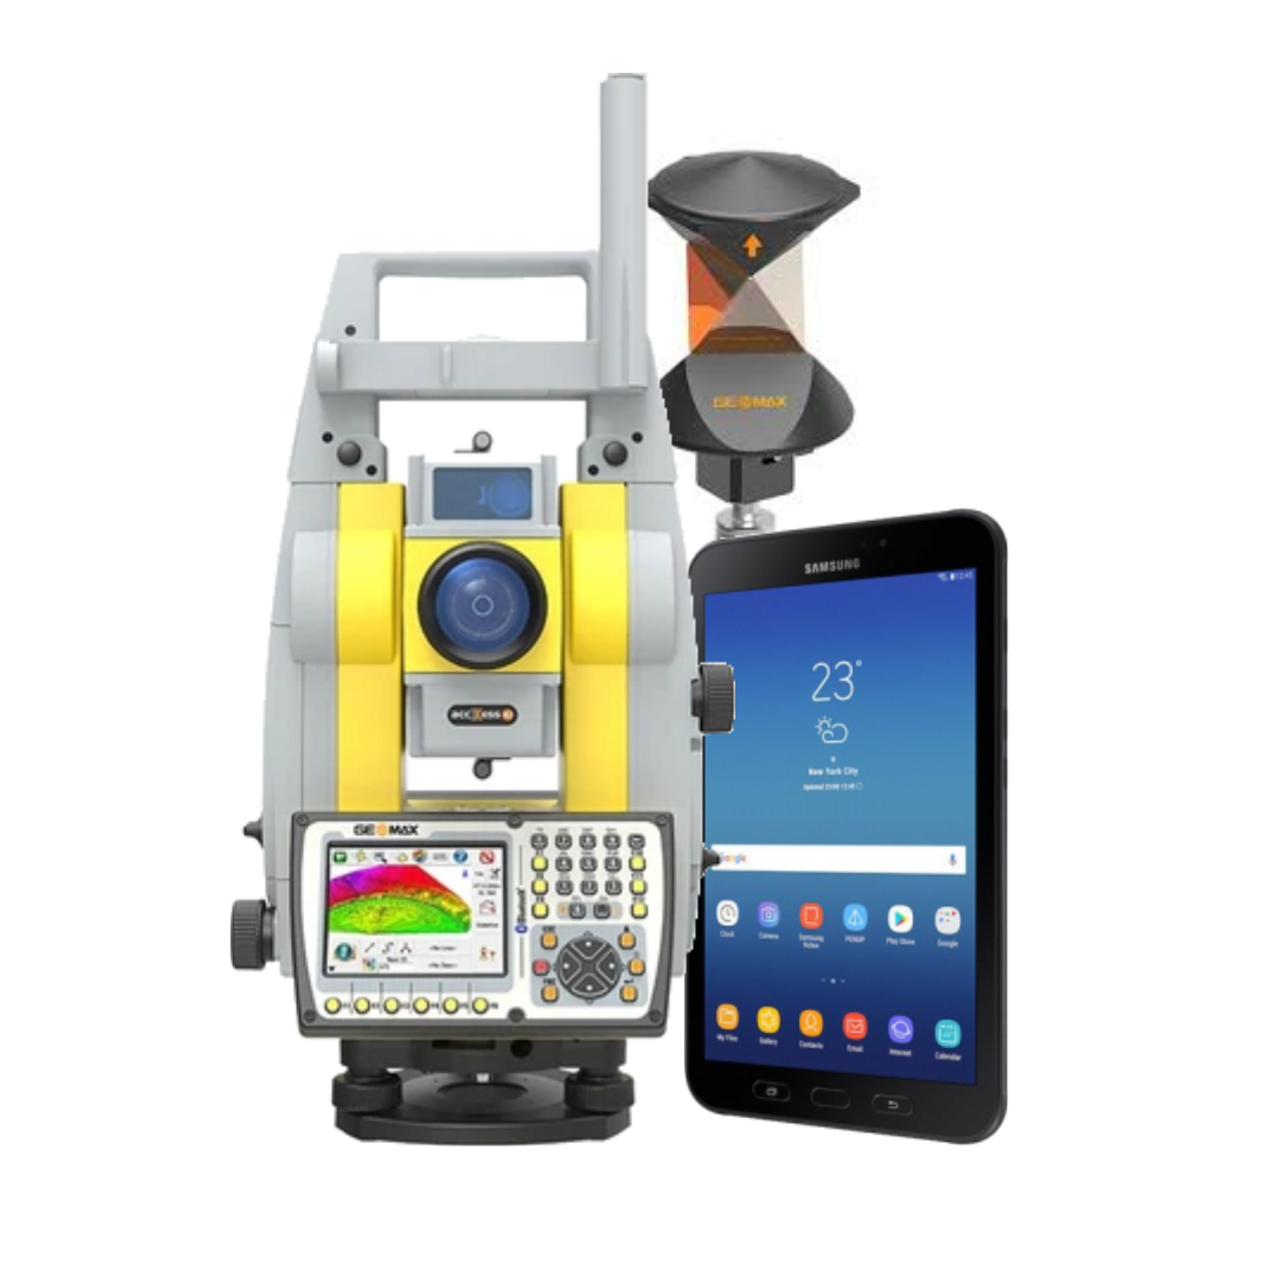 used Zoom70 total station with Samsung rugged tablet